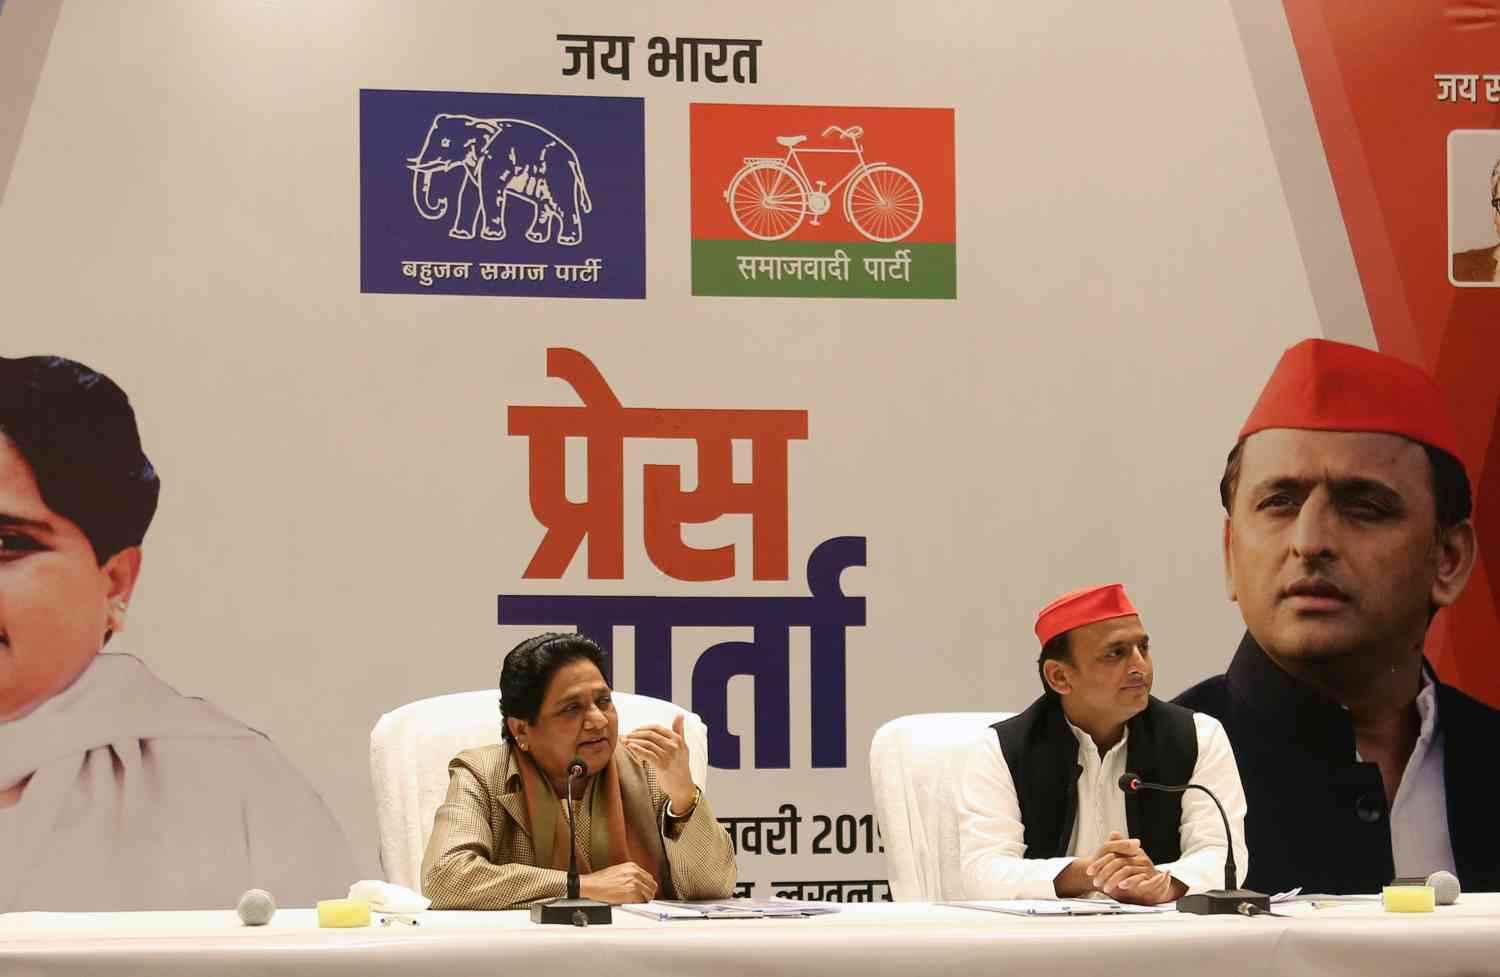 Mayawati and Akhilesh Yadav announce their alliance in January. (Photo credit: AFP).